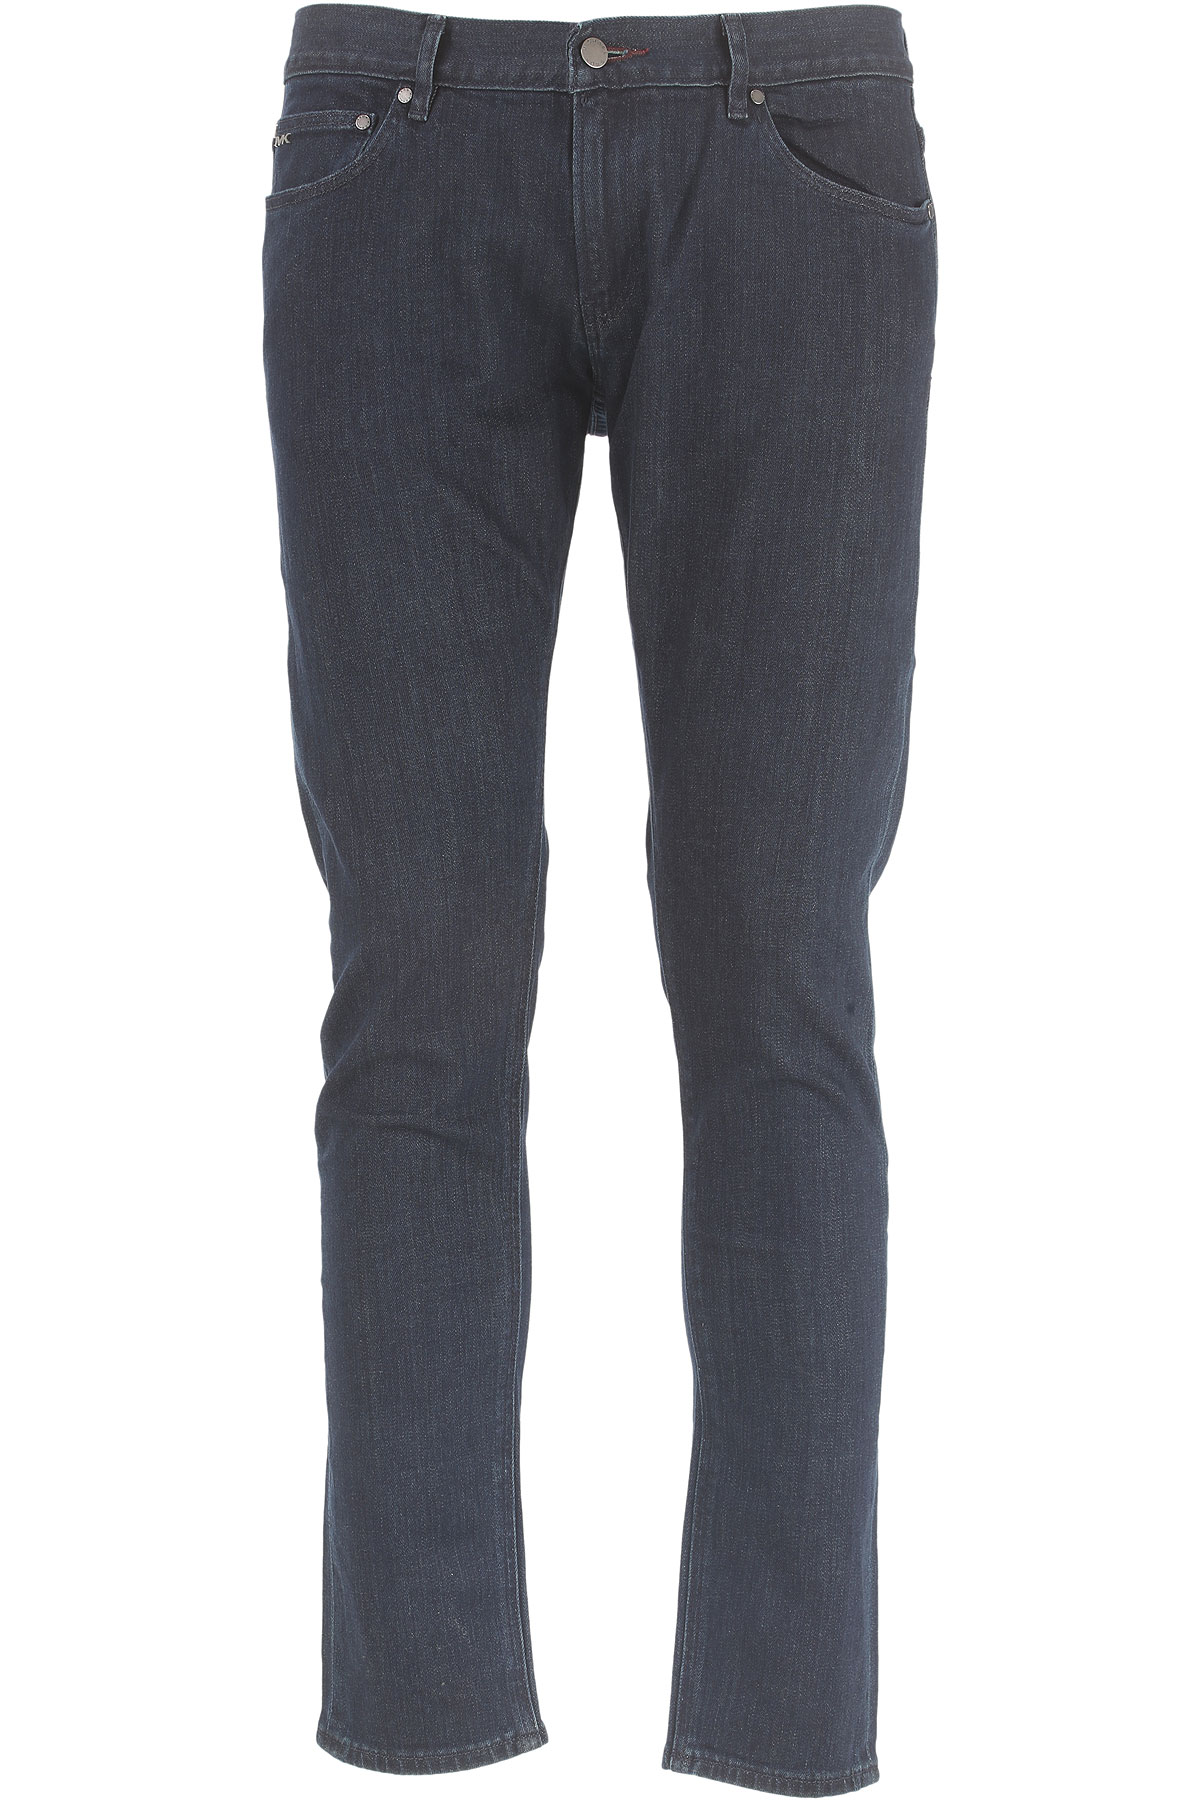 Michael Kors Jeans On Sale in Outlet, Dark Blue, Cotton, 2017, 31 32 33 34 36 USA-372608